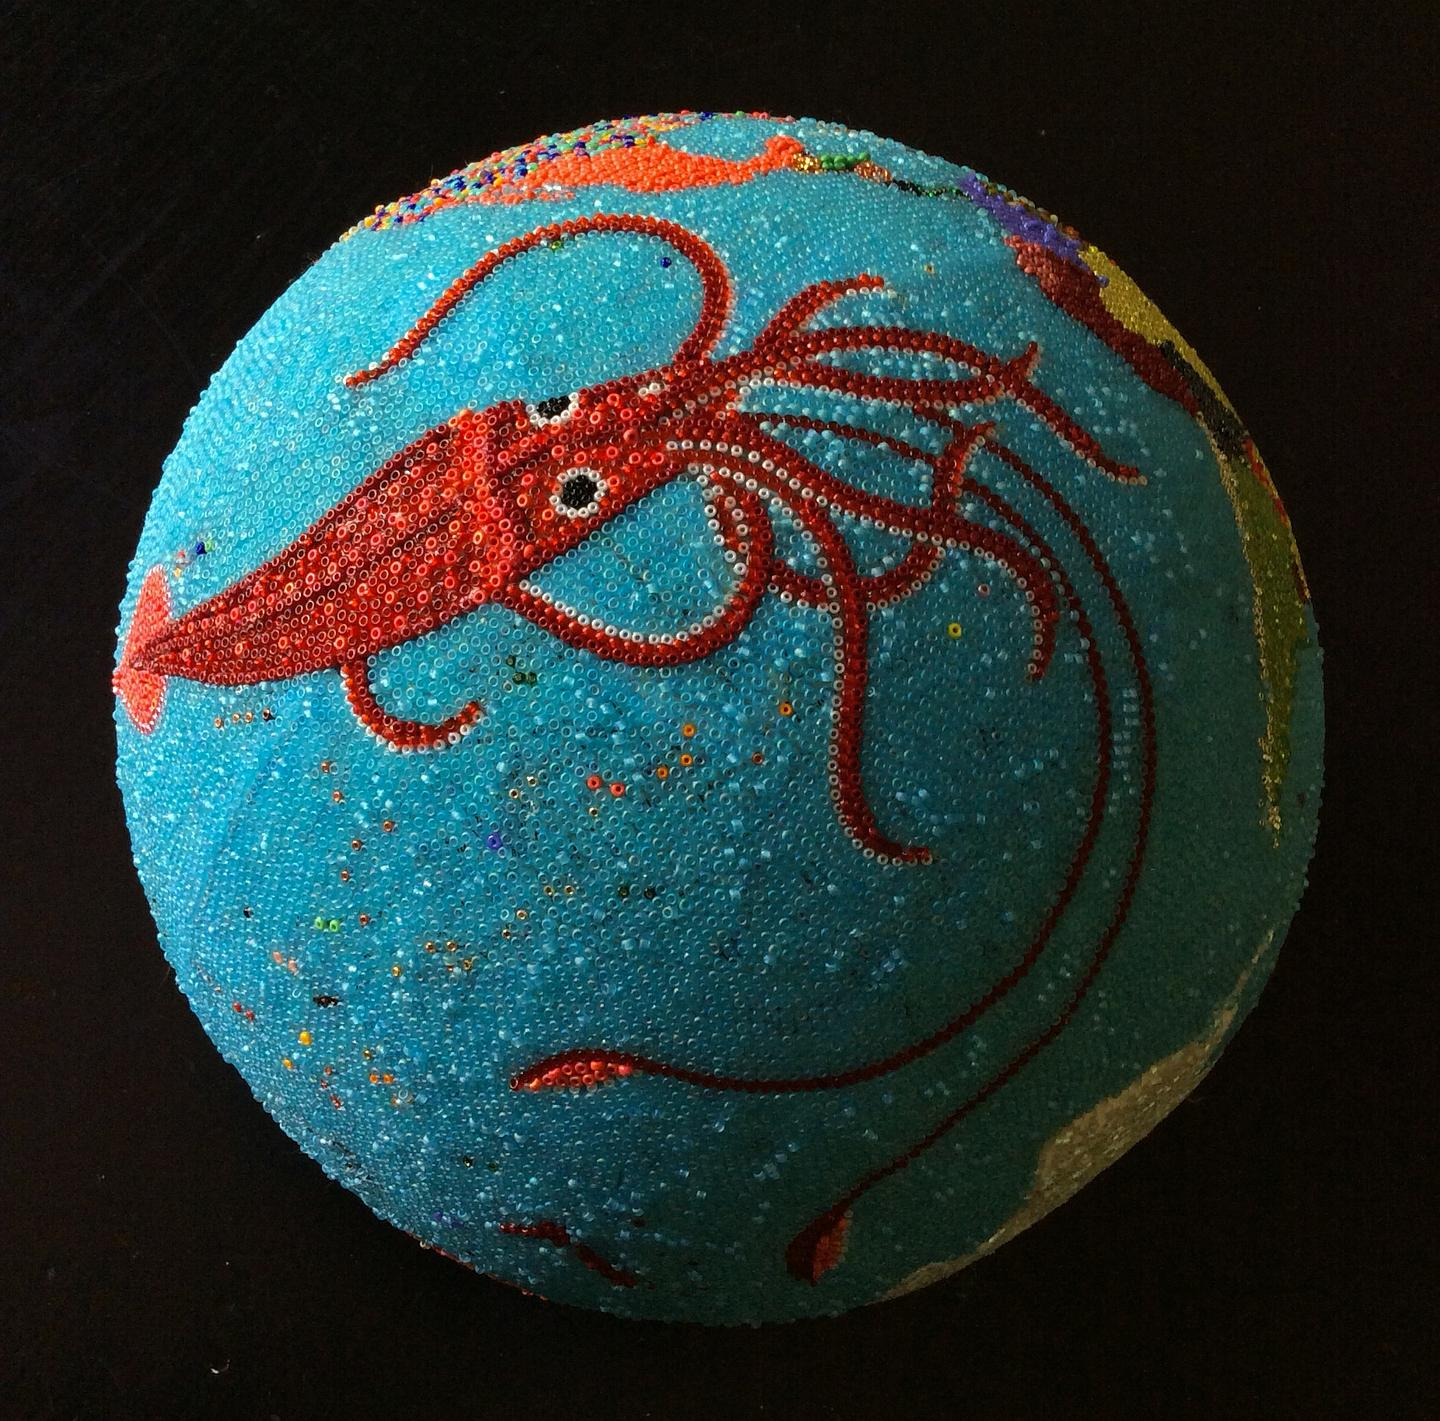 Beaded Globe, Pacific Ocean Giant Squid